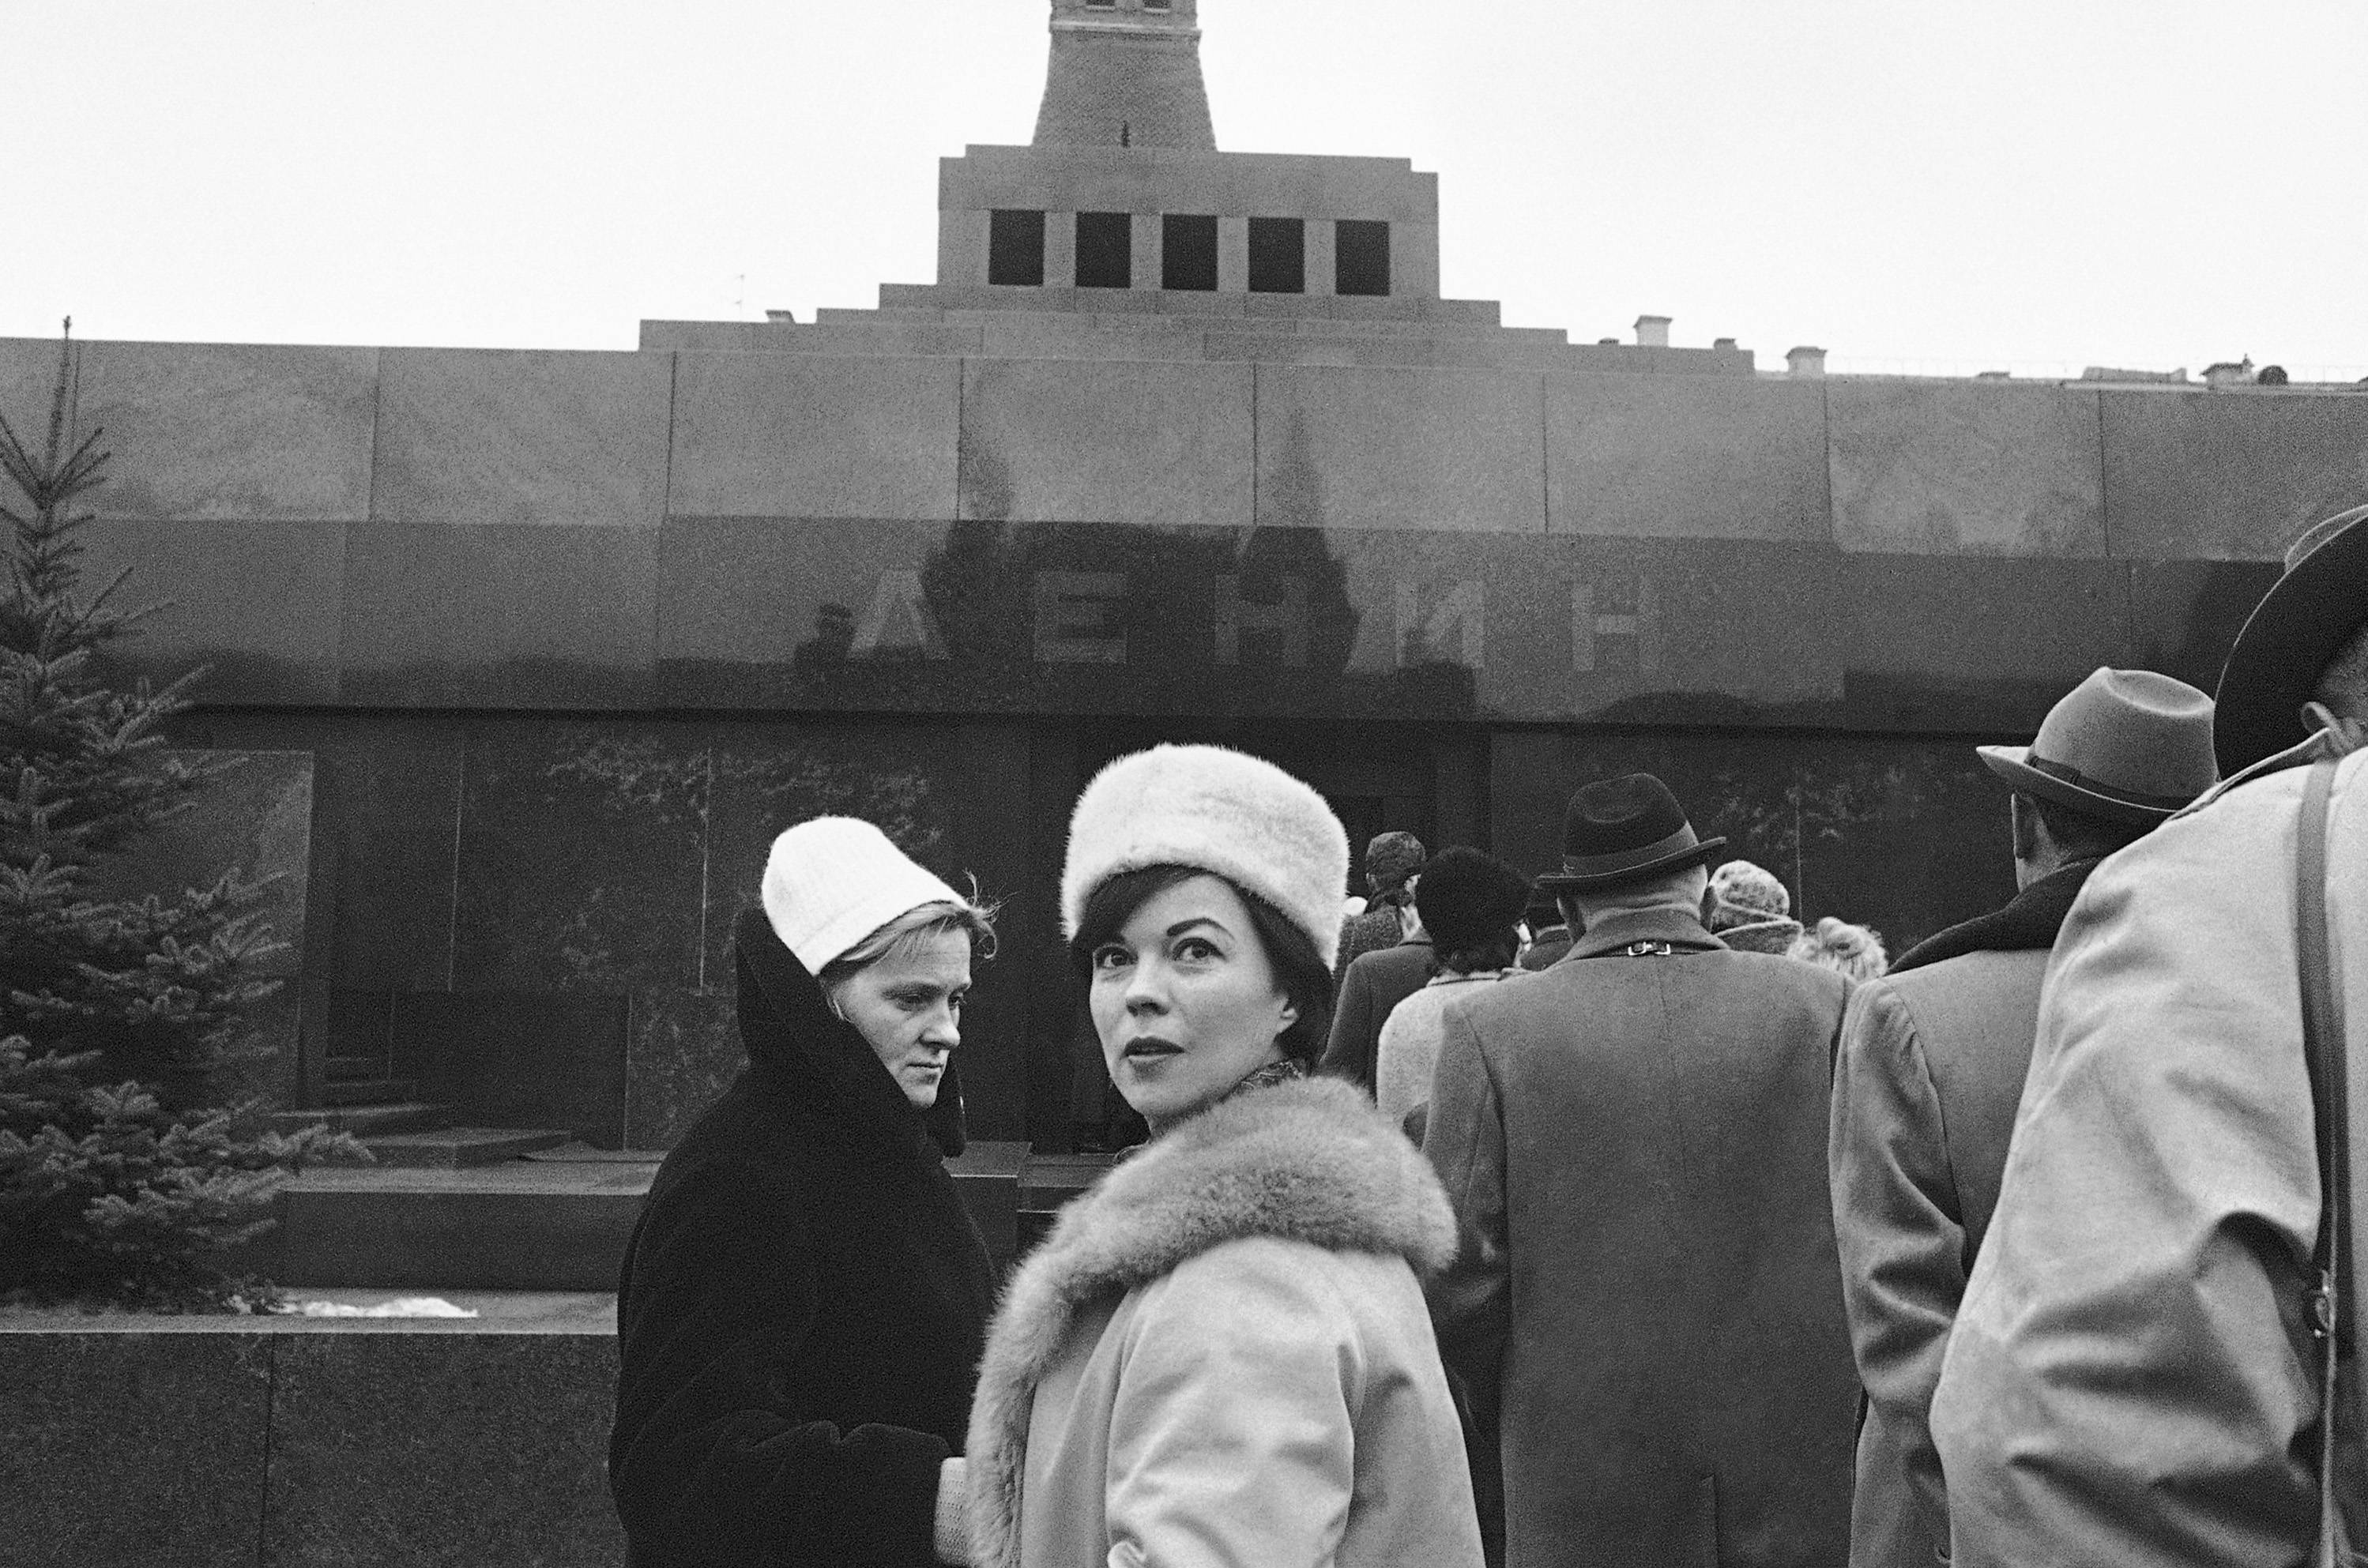 Shirley Temple, former child film star, waits in the line to visit Lenin's tomb in Red Square, in Moscow.